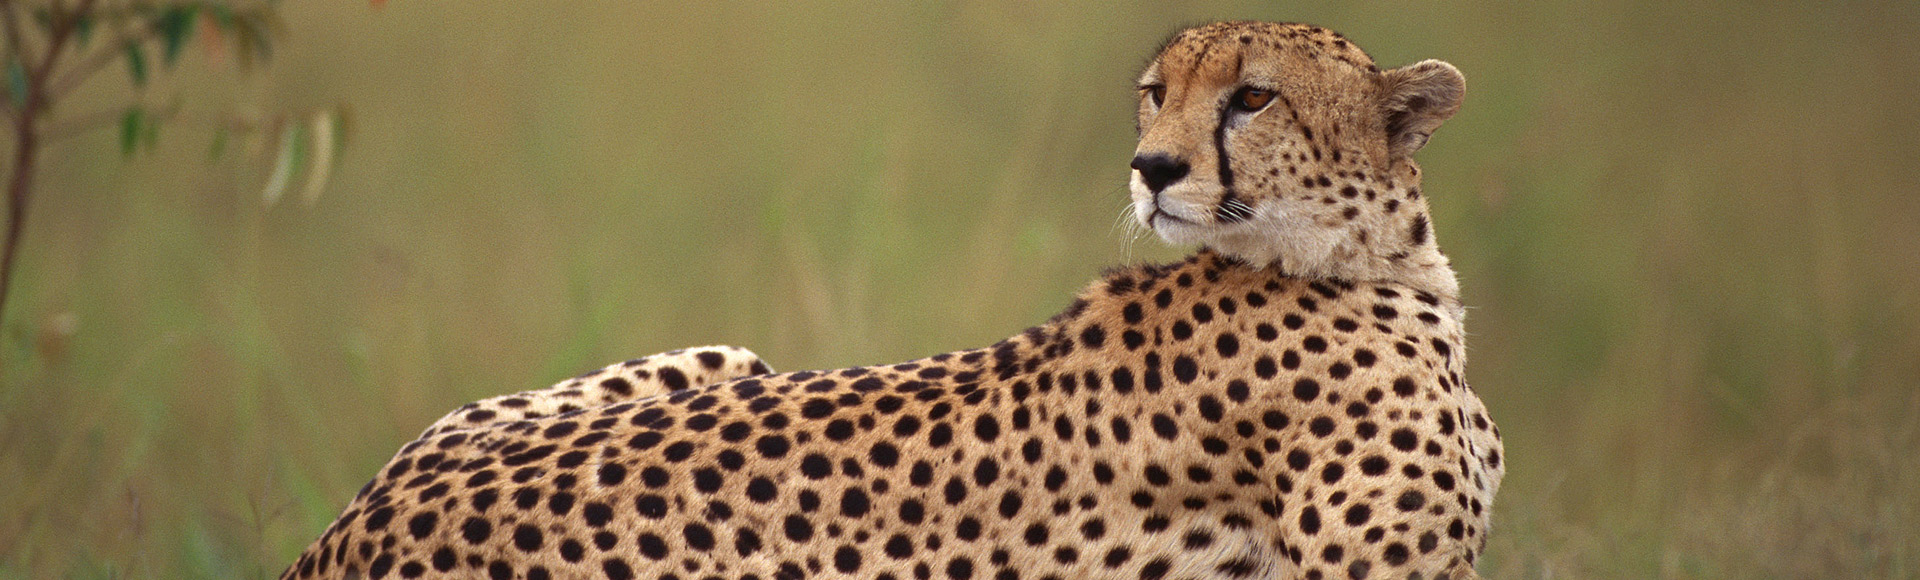 Cheetah in the Serengeti National Park